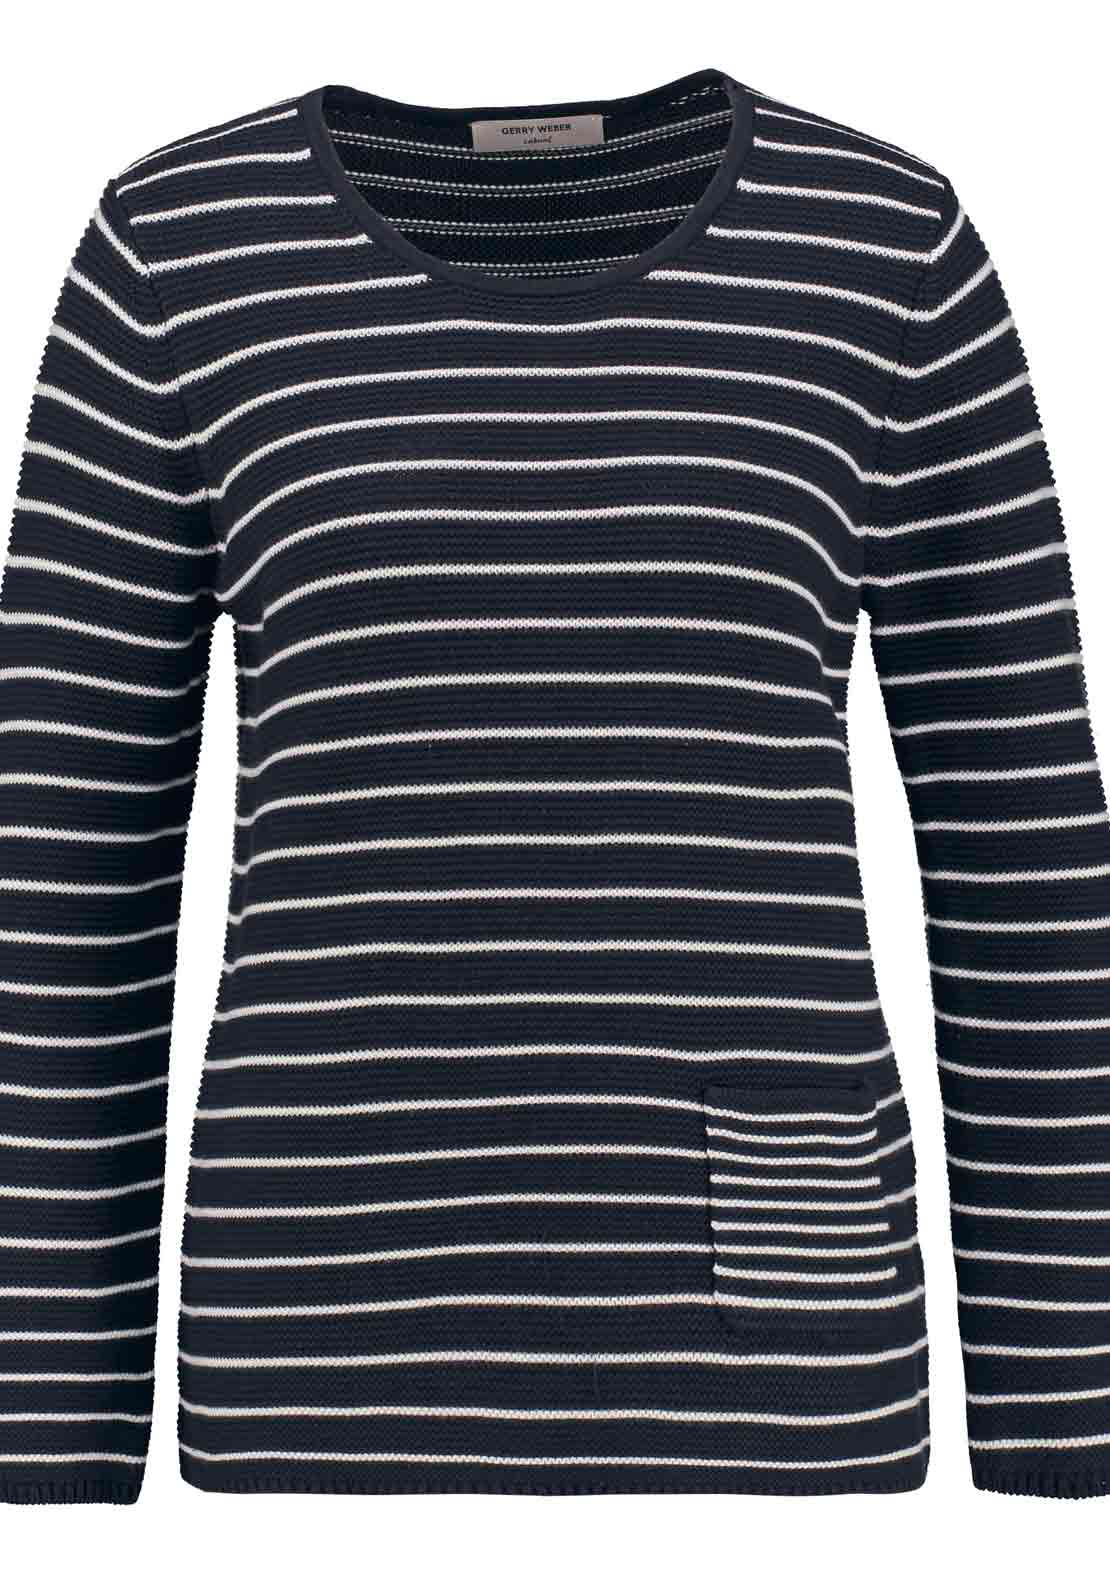 Gerry Weber Striped Chunky Knit Sweater Jumper, Navy and White